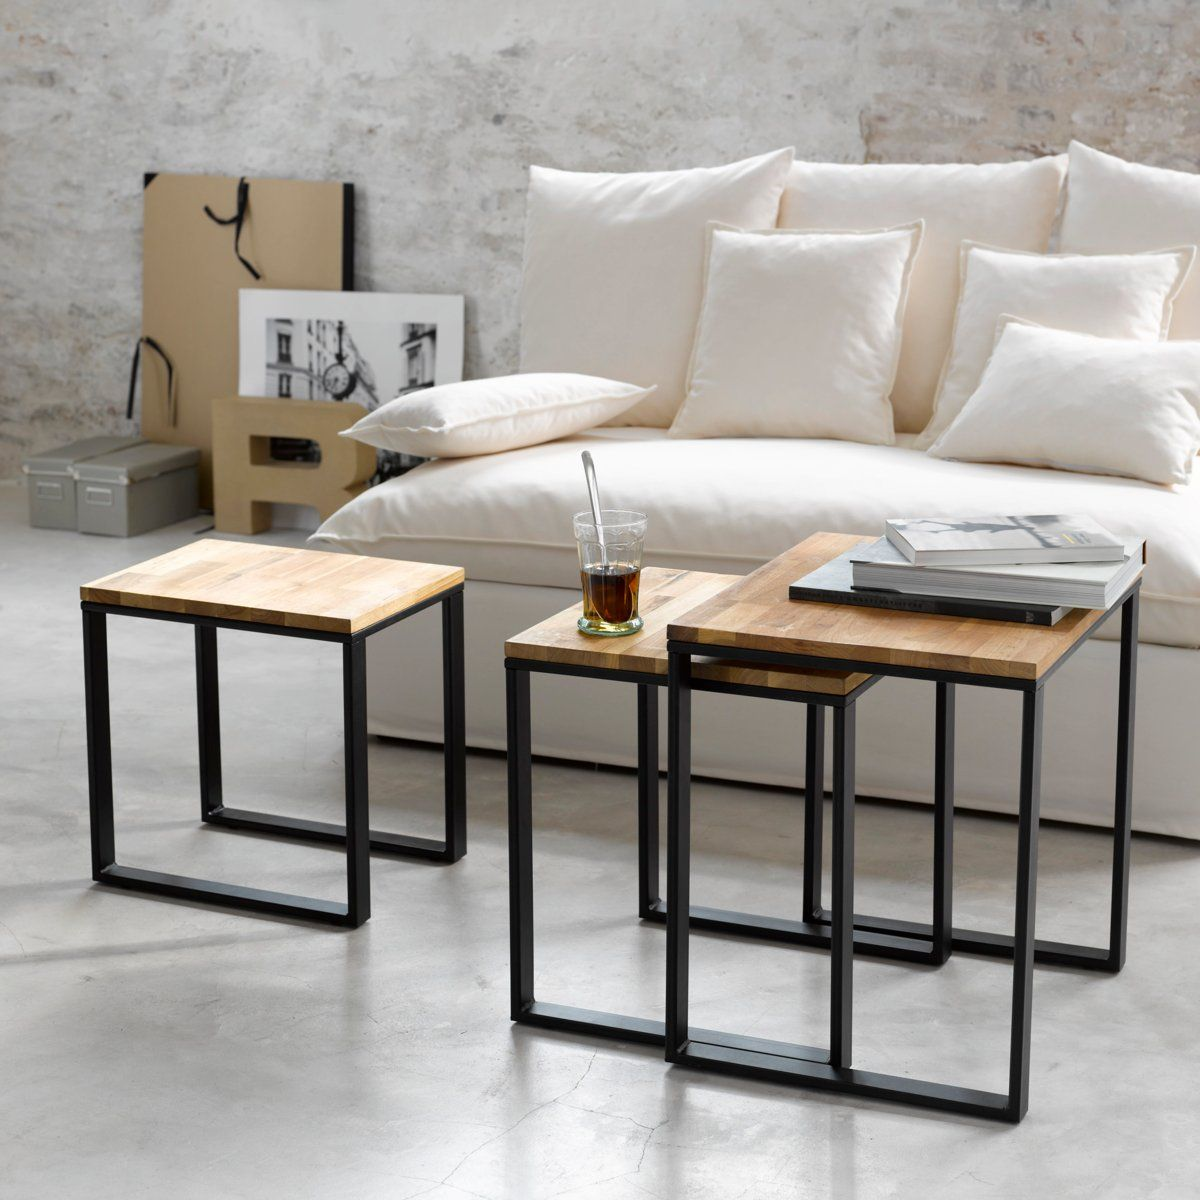 table basse rep rage nouvelle tendance 1 le blog d co. Black Bedroom Furniture Sets. Home Design Ideas